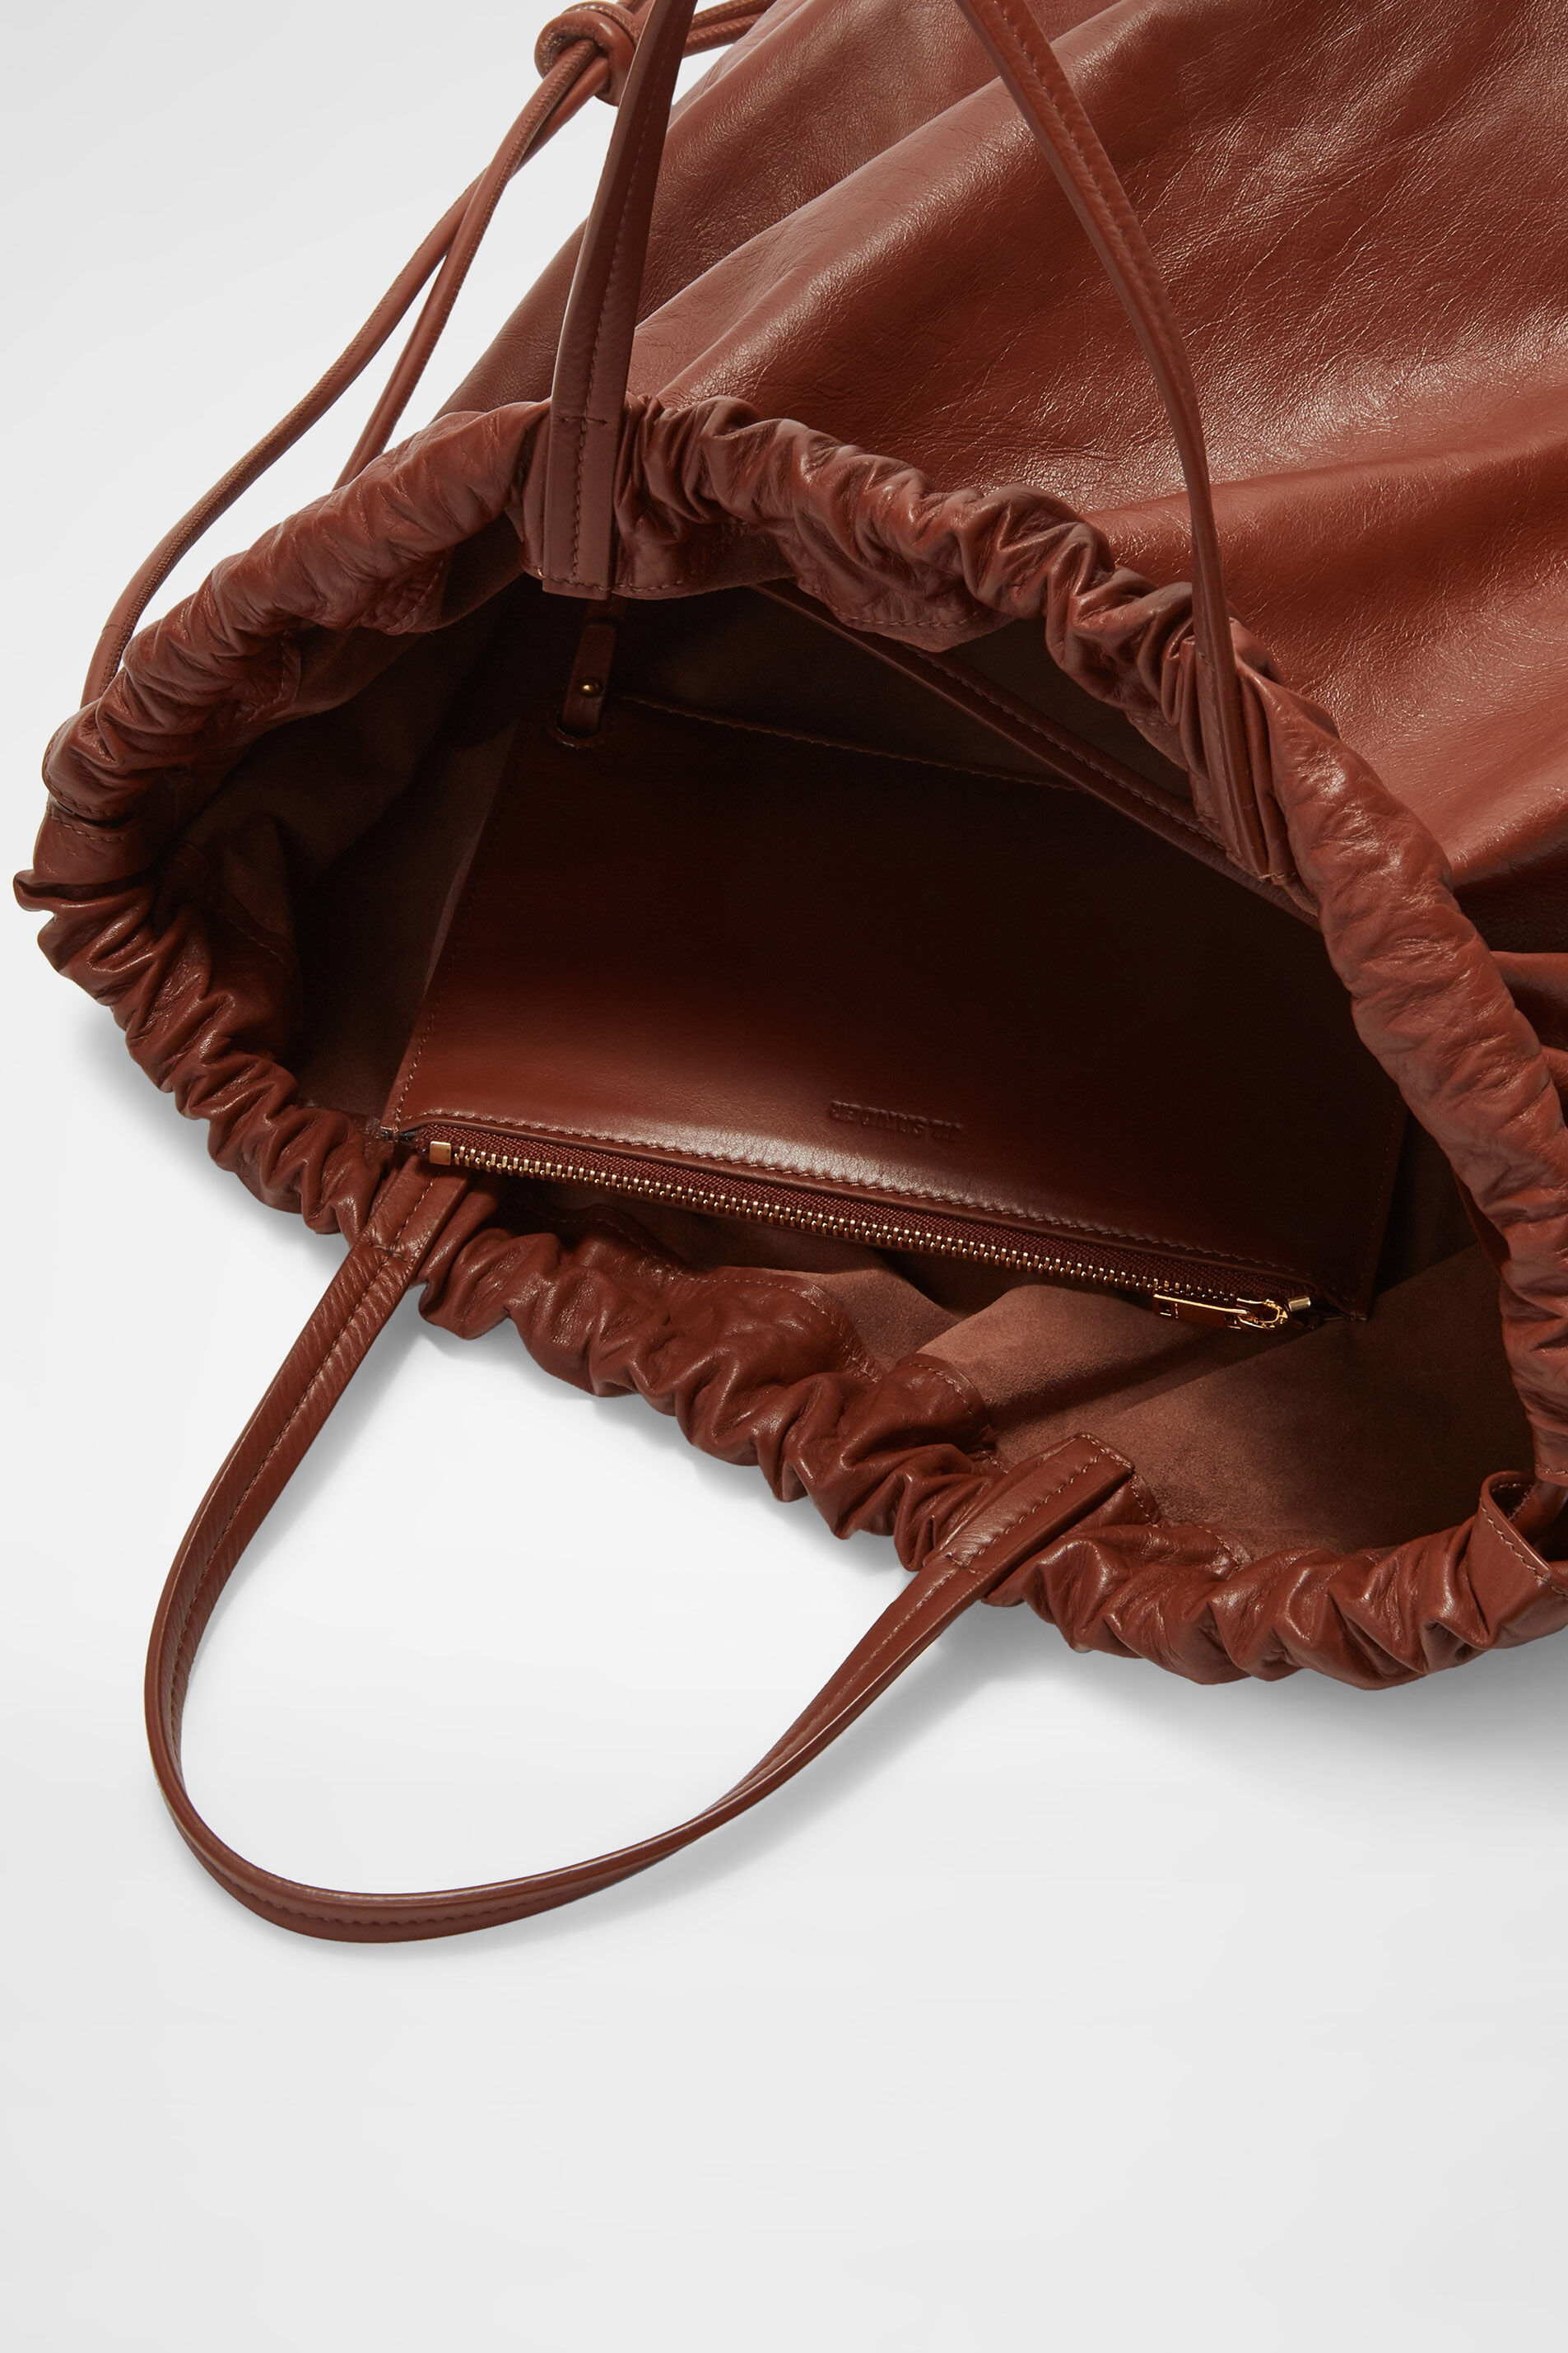 Drawstring Backpack Tote, copper, large